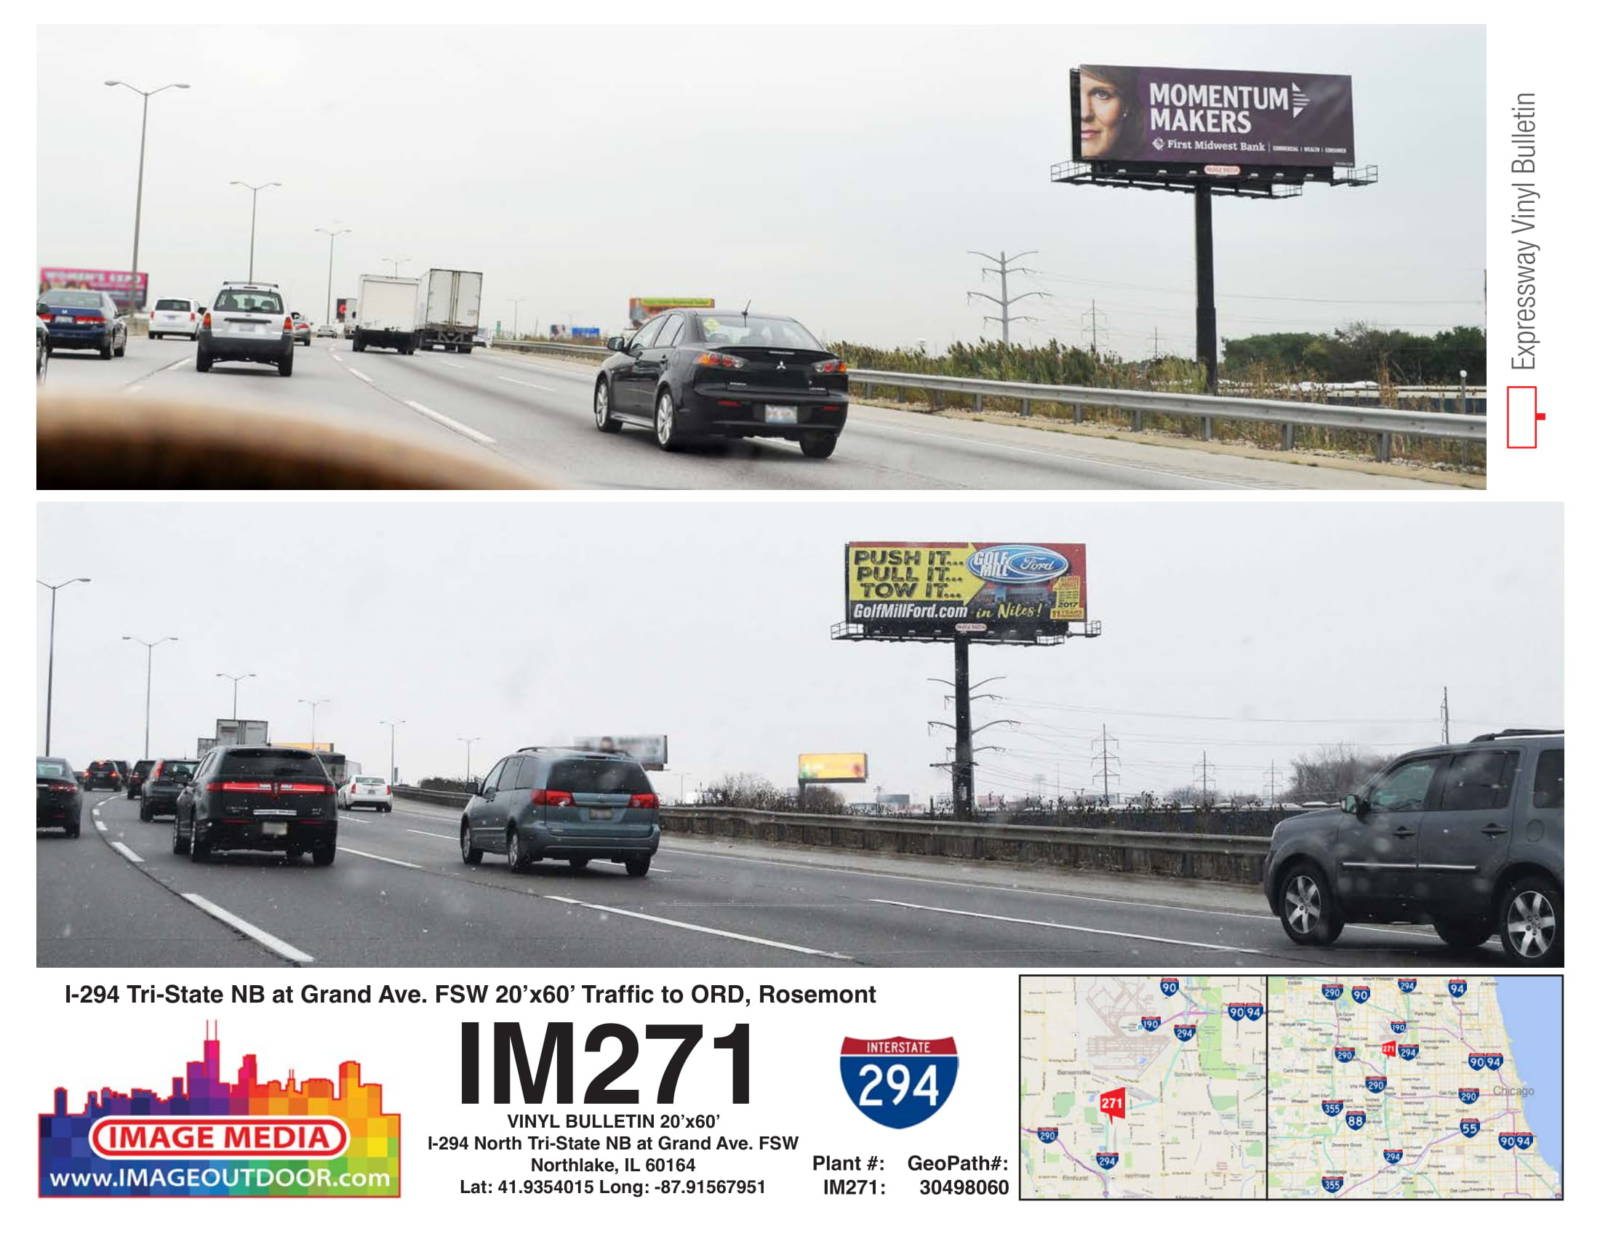 IM271 - bulletin on I-294 northbound at Grand Ave.